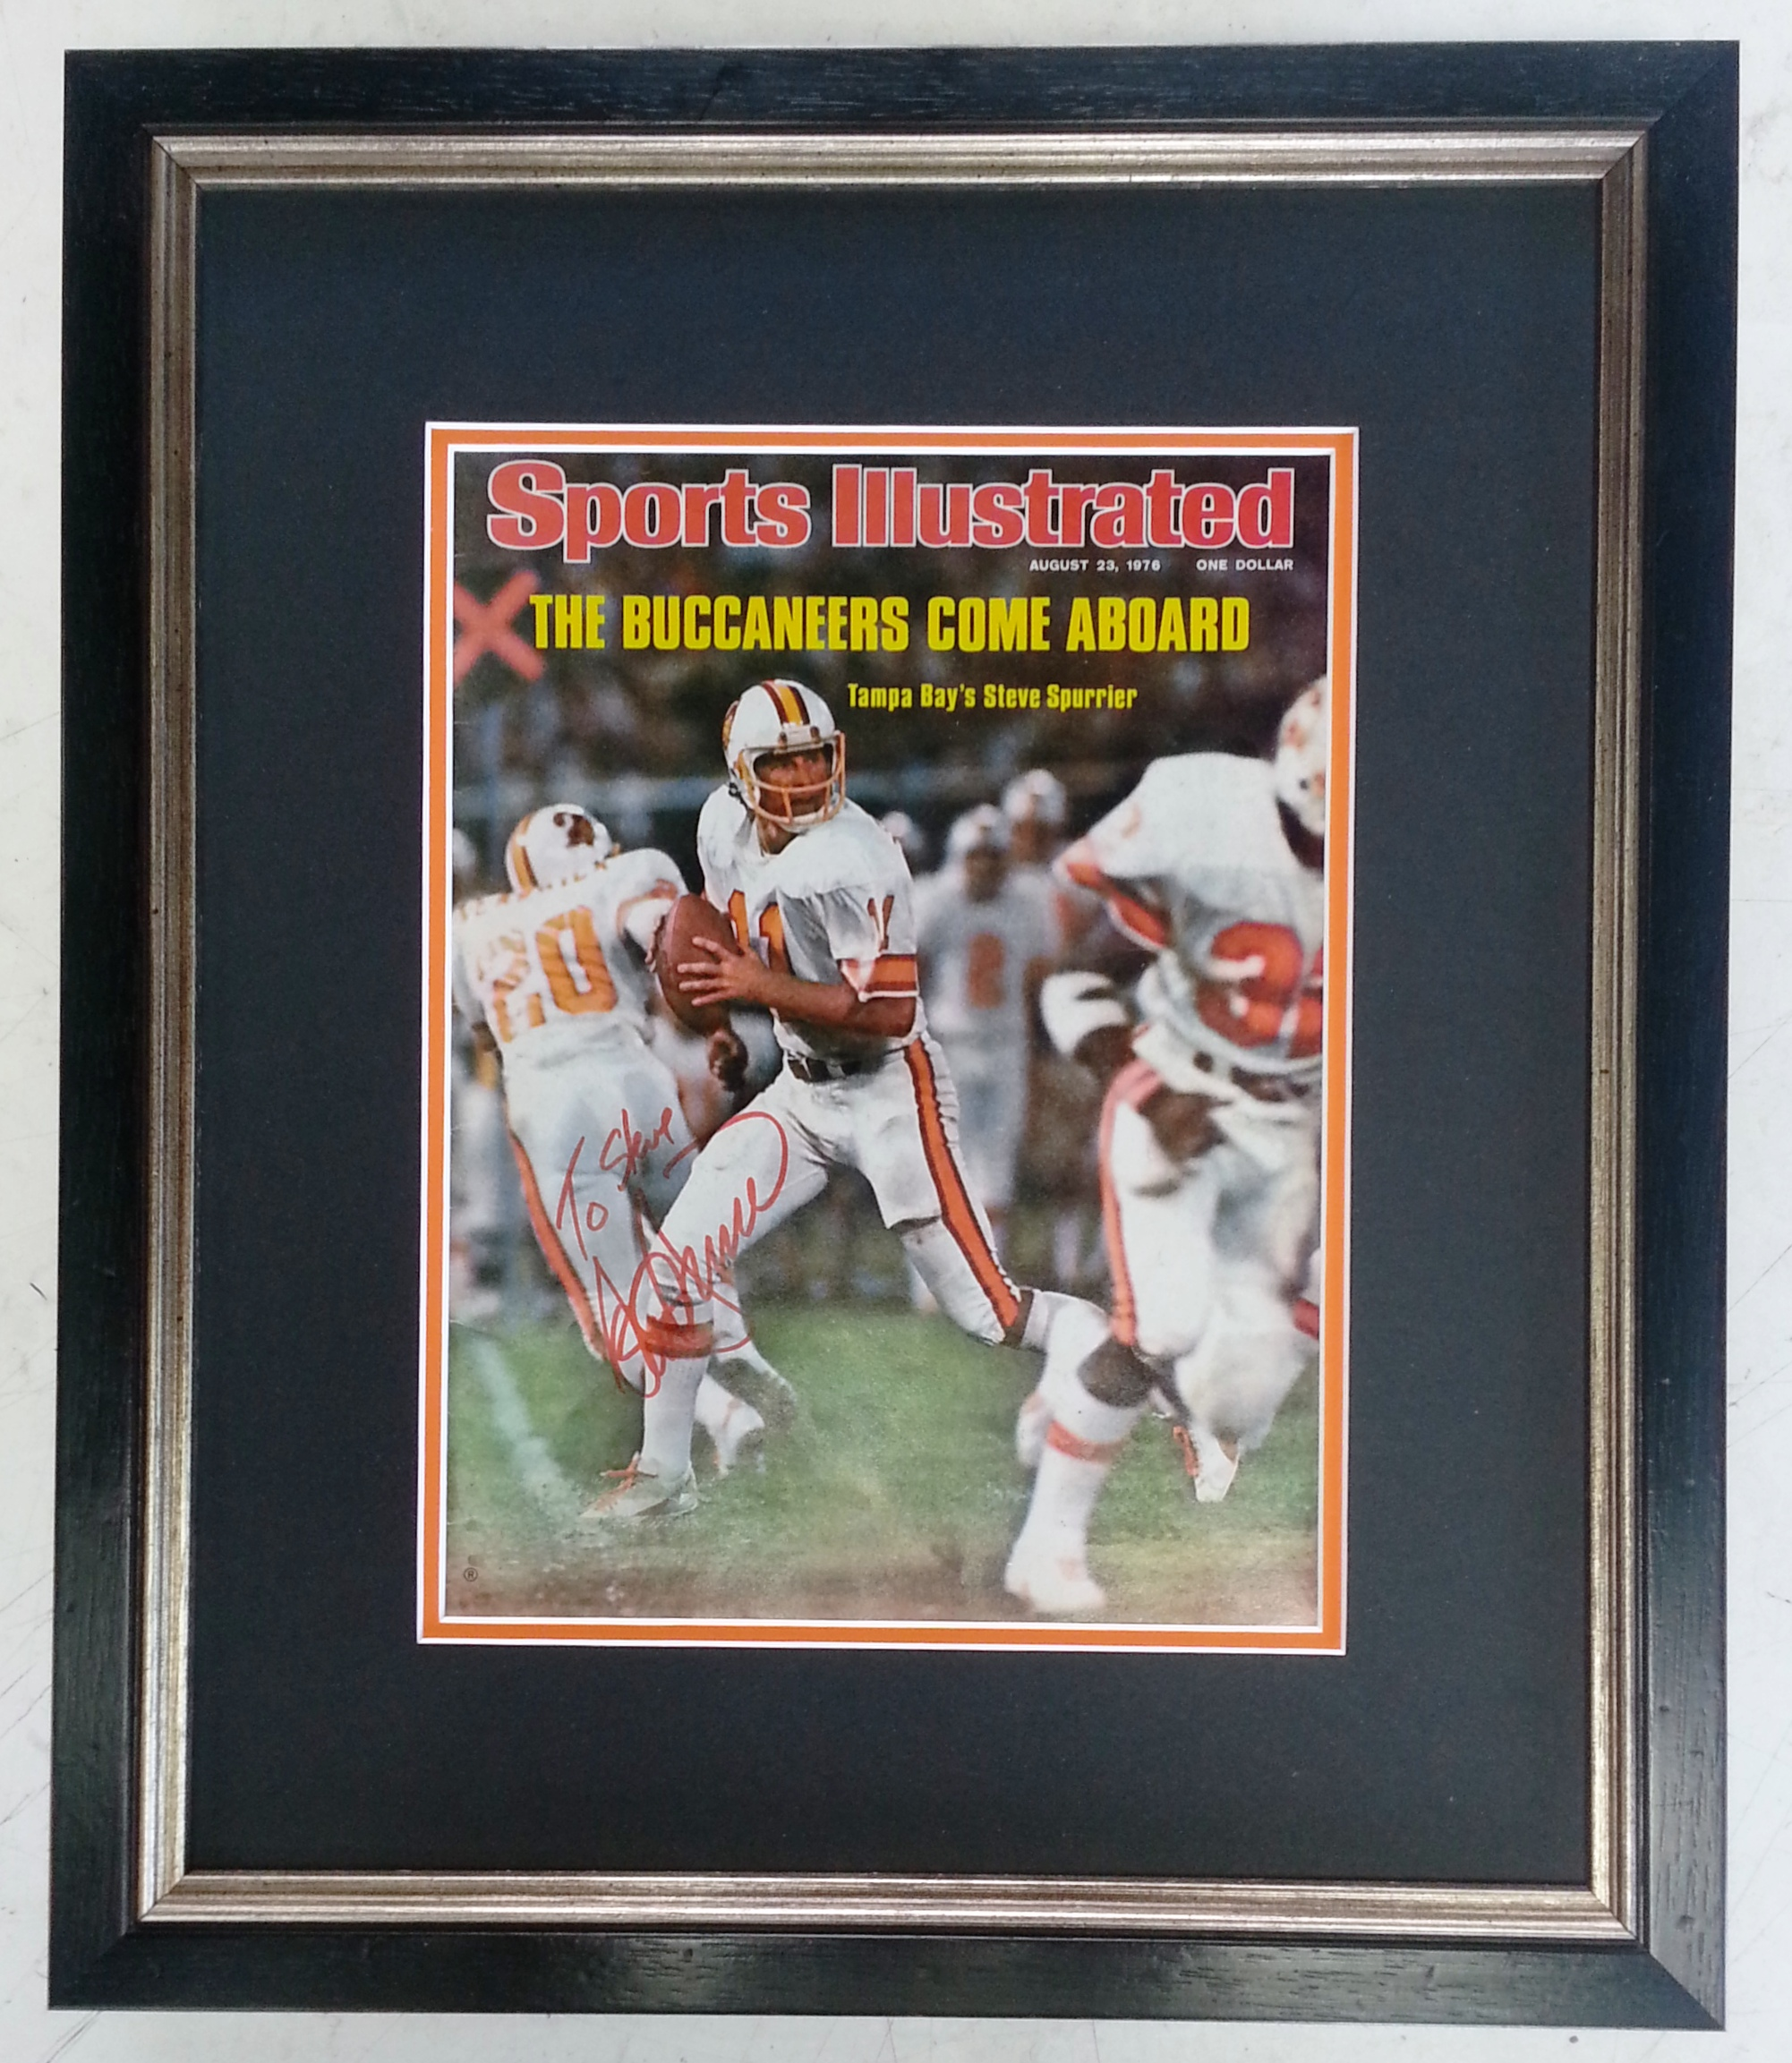 Framed magazine columbia frame shop filed under framed sports memorabilia of the day tagged with collectible five points frame shop framed magazine gamecocks museum quality jeuxipadfo Images